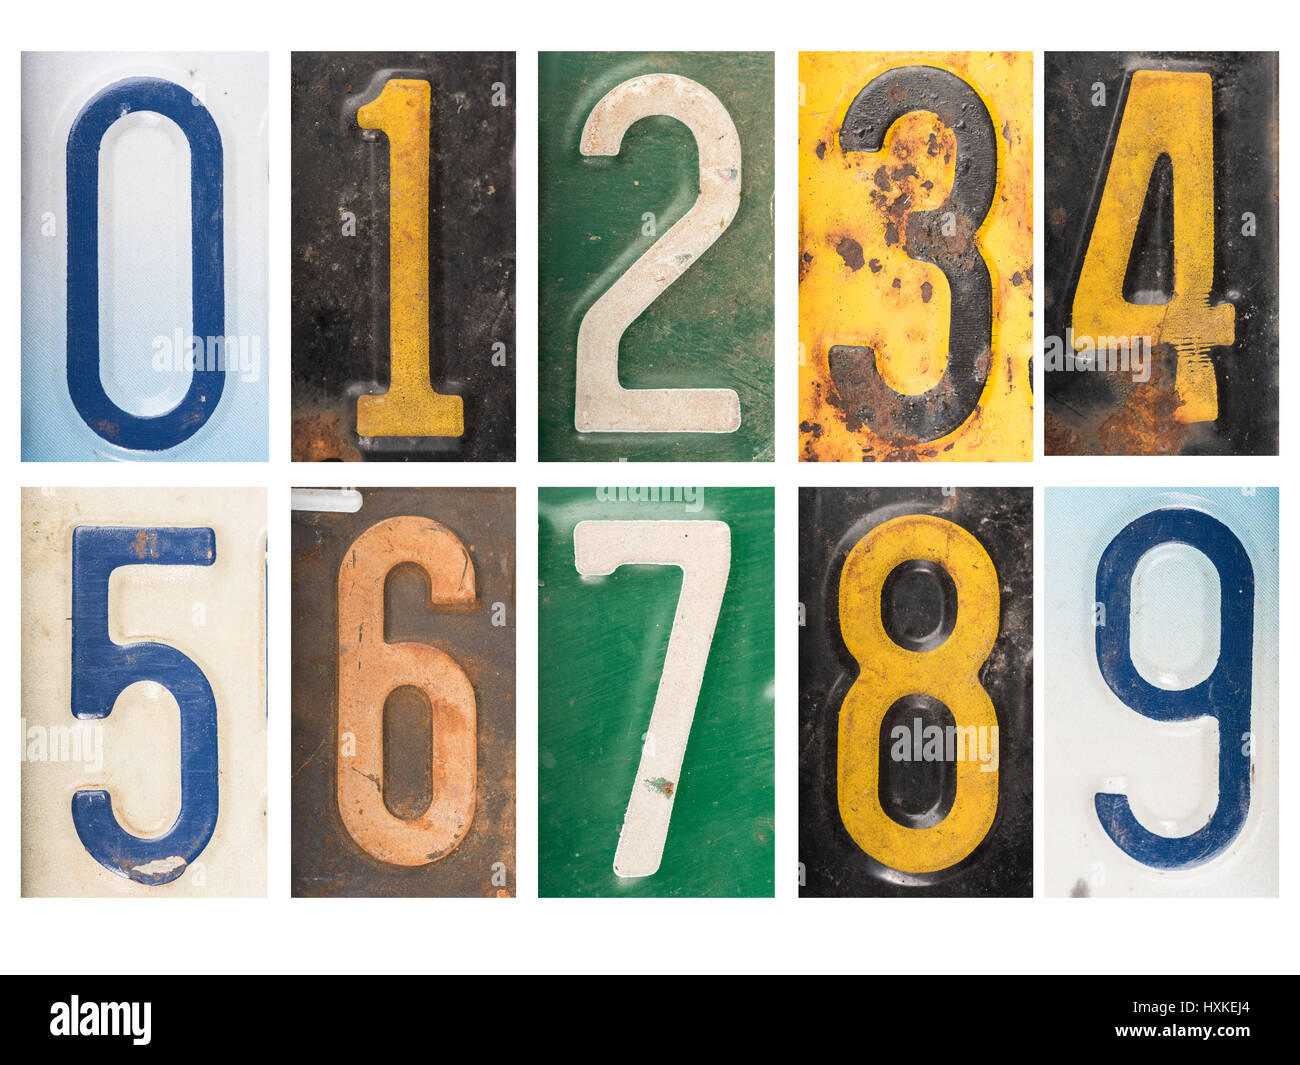 License Plate Numbers Stock Photos & License Plate Numbers Stock ...